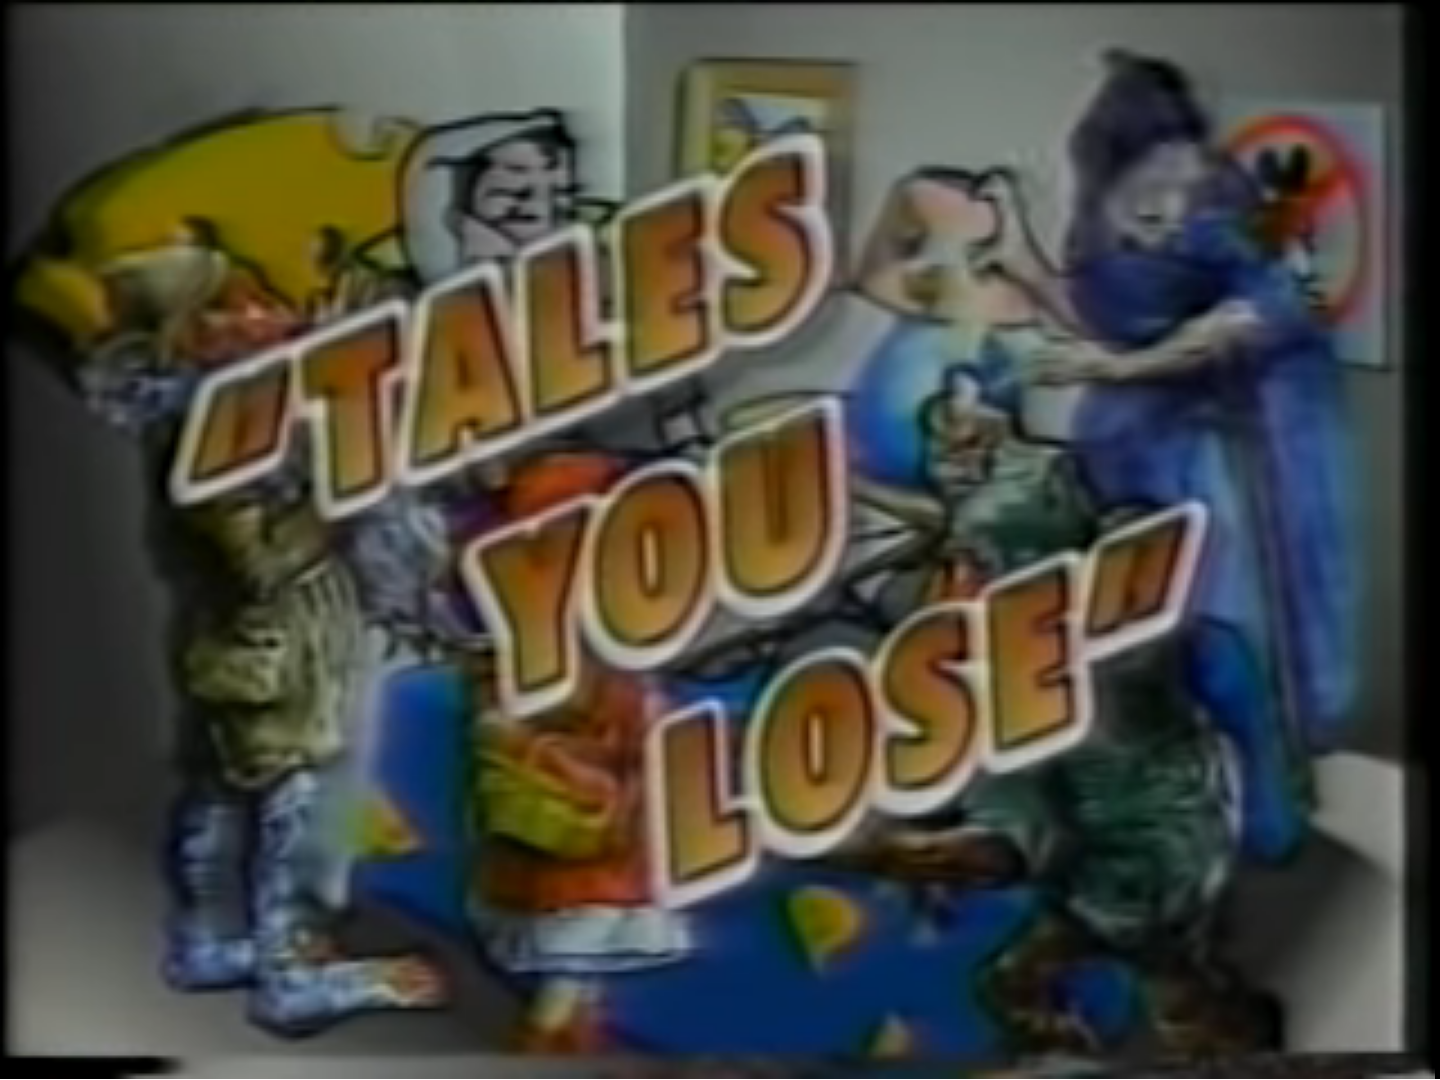 Tales You Lose